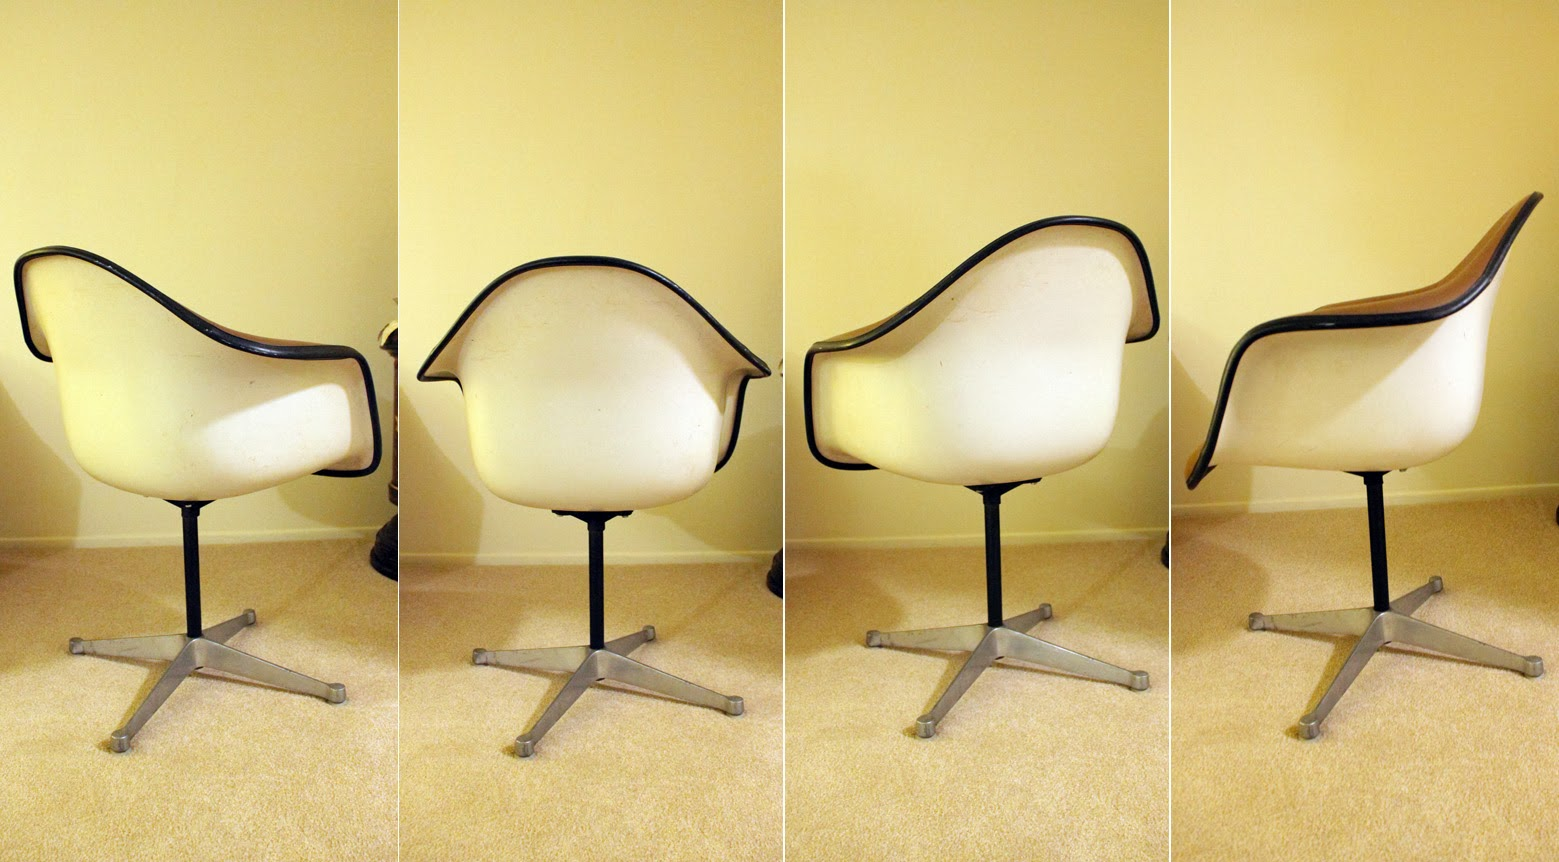 A Herman Miller Fiberglass Based Swivel Shell Chair In White And Brown.  Chair Is Upholstered With A Fabric Seat And Vinyl Sides. Base Is Aluminum.